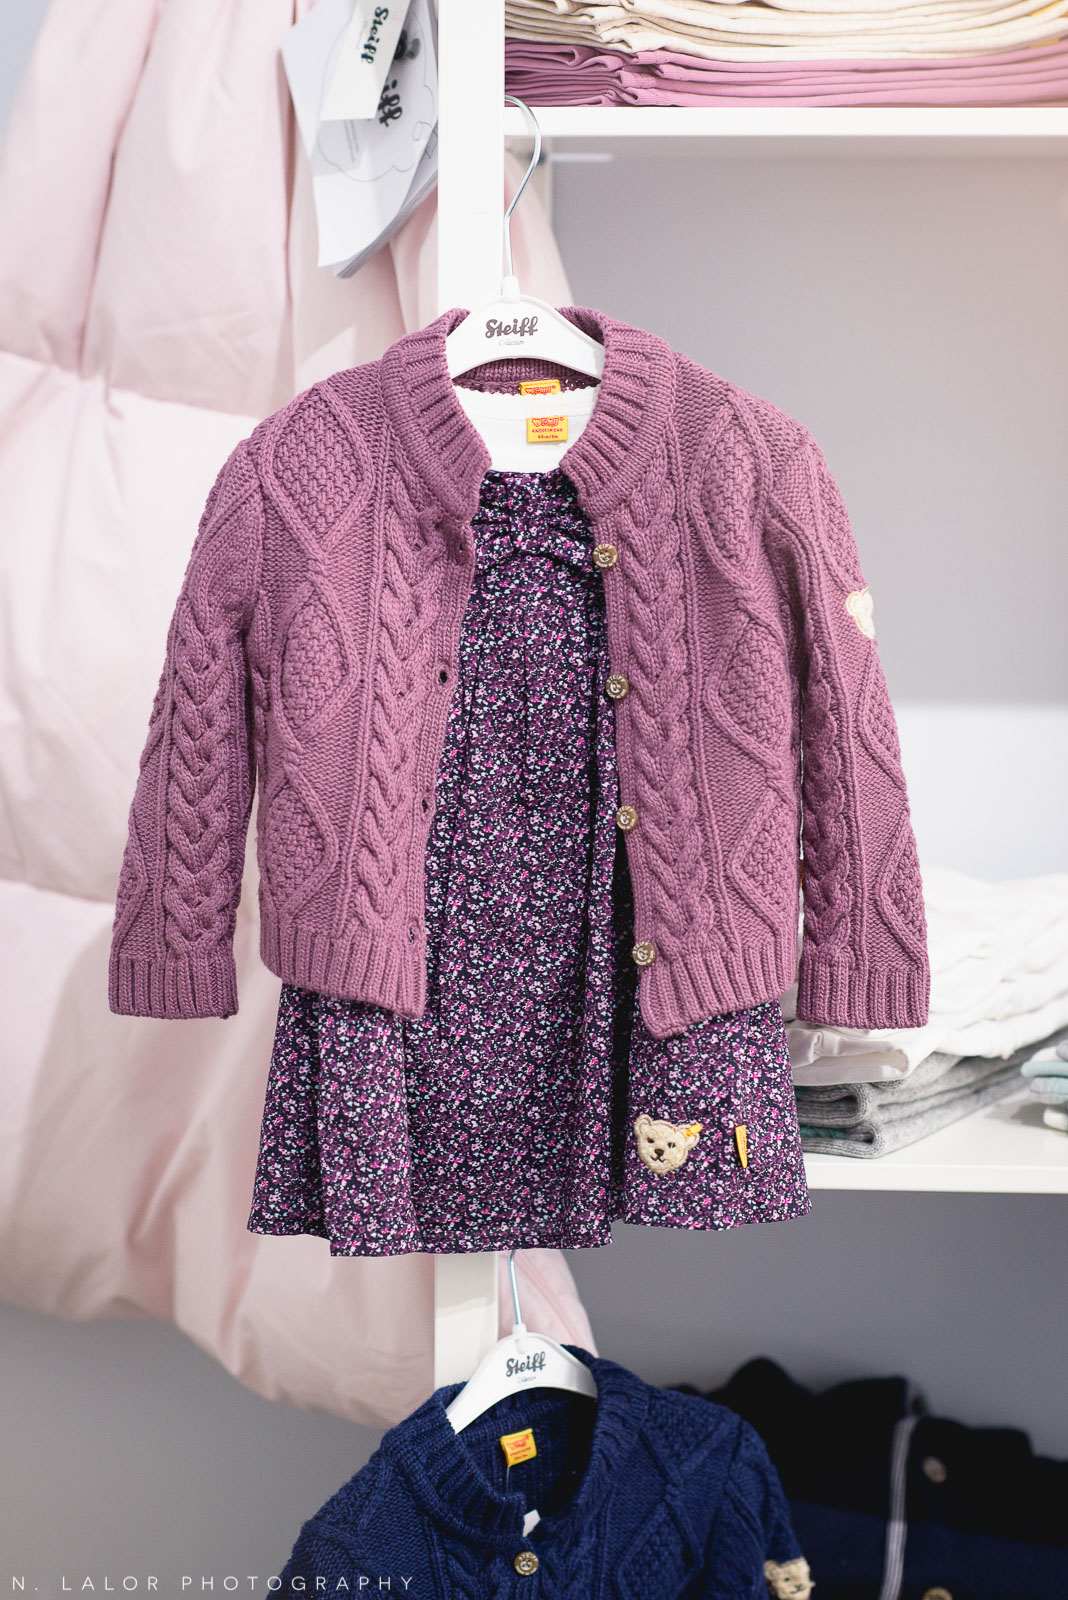 The perfect fall/winter outfit for a little girl, only at Ella & Henry in New Canaan. Photo by N. Lalor Photography.